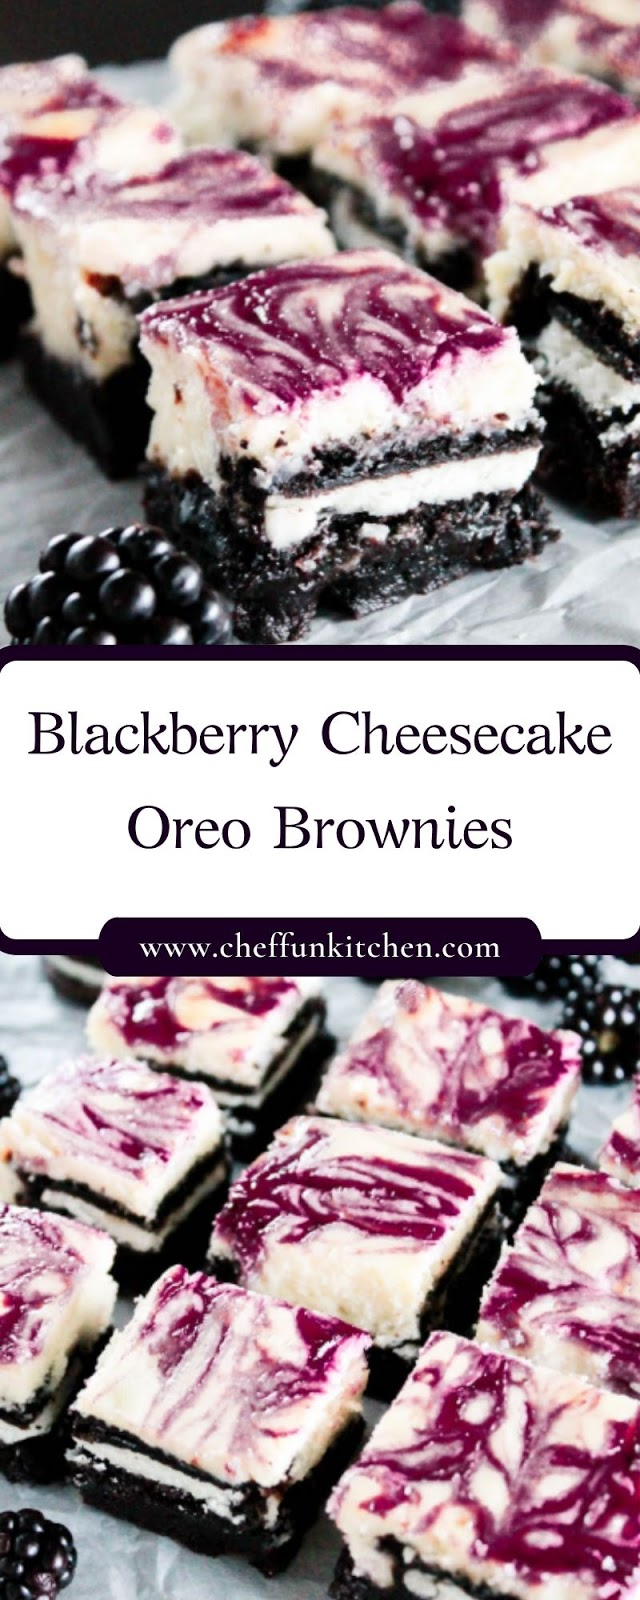 Blackberry Cheesecake Oreo Brownies